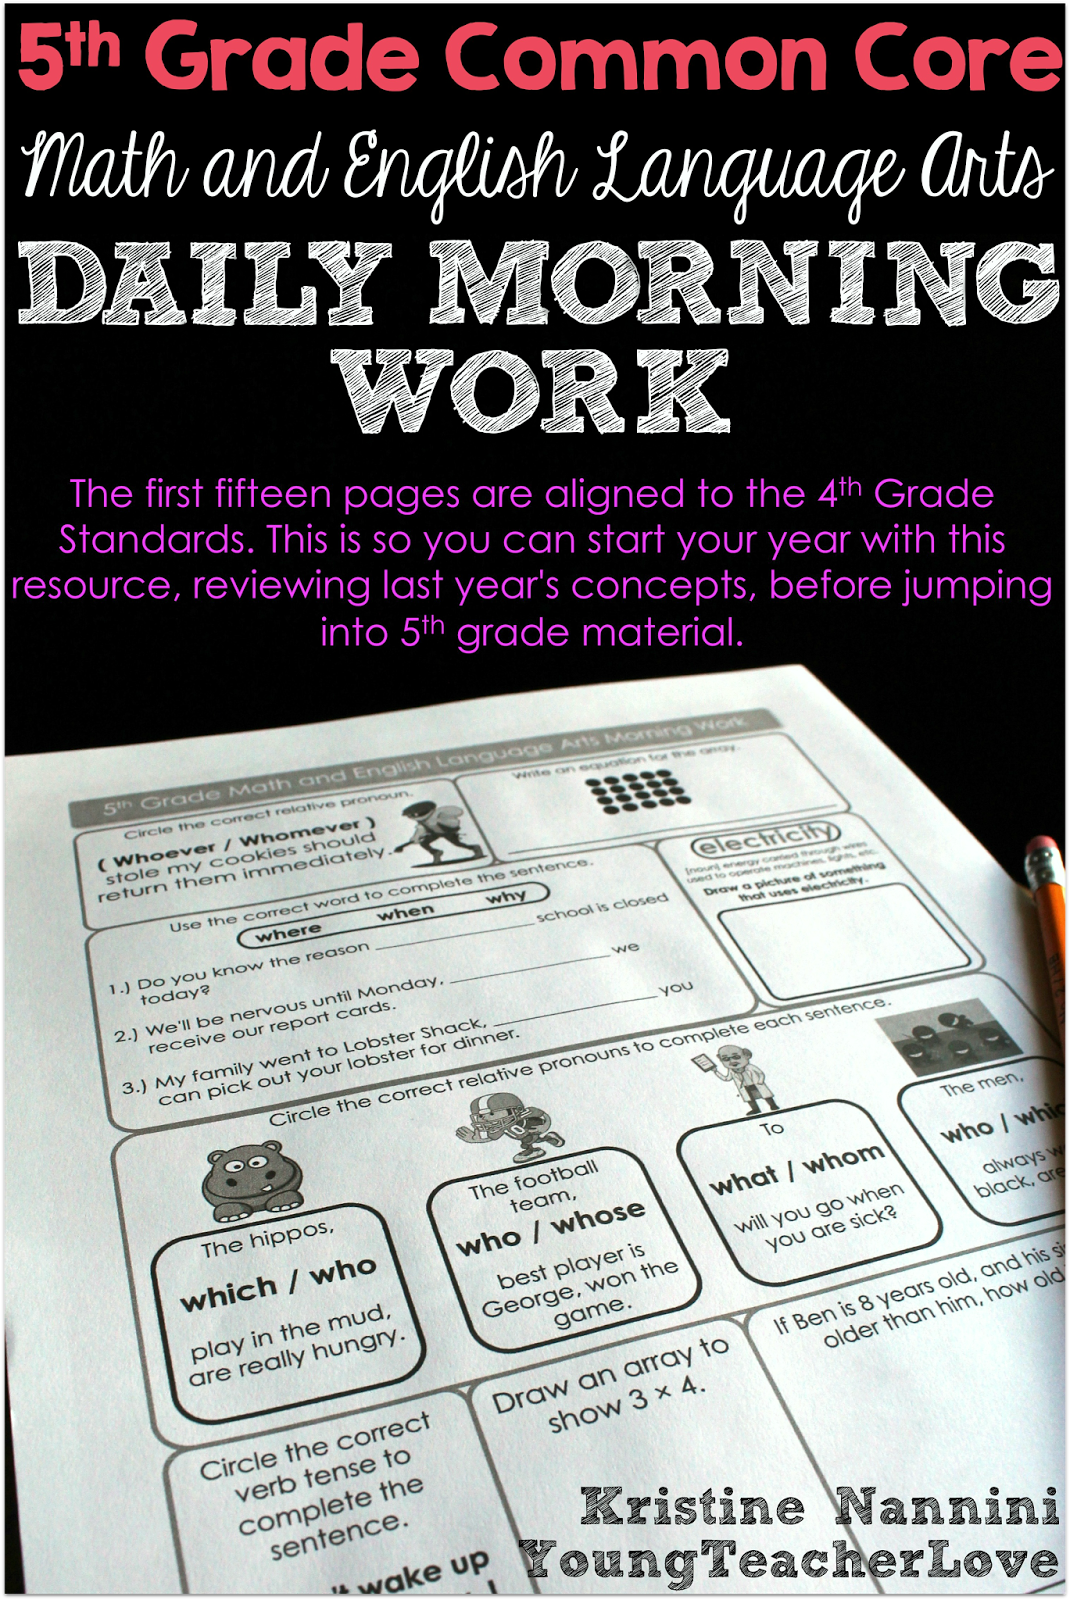 Morning Work Daily Review 5th Grade Common Core Math And